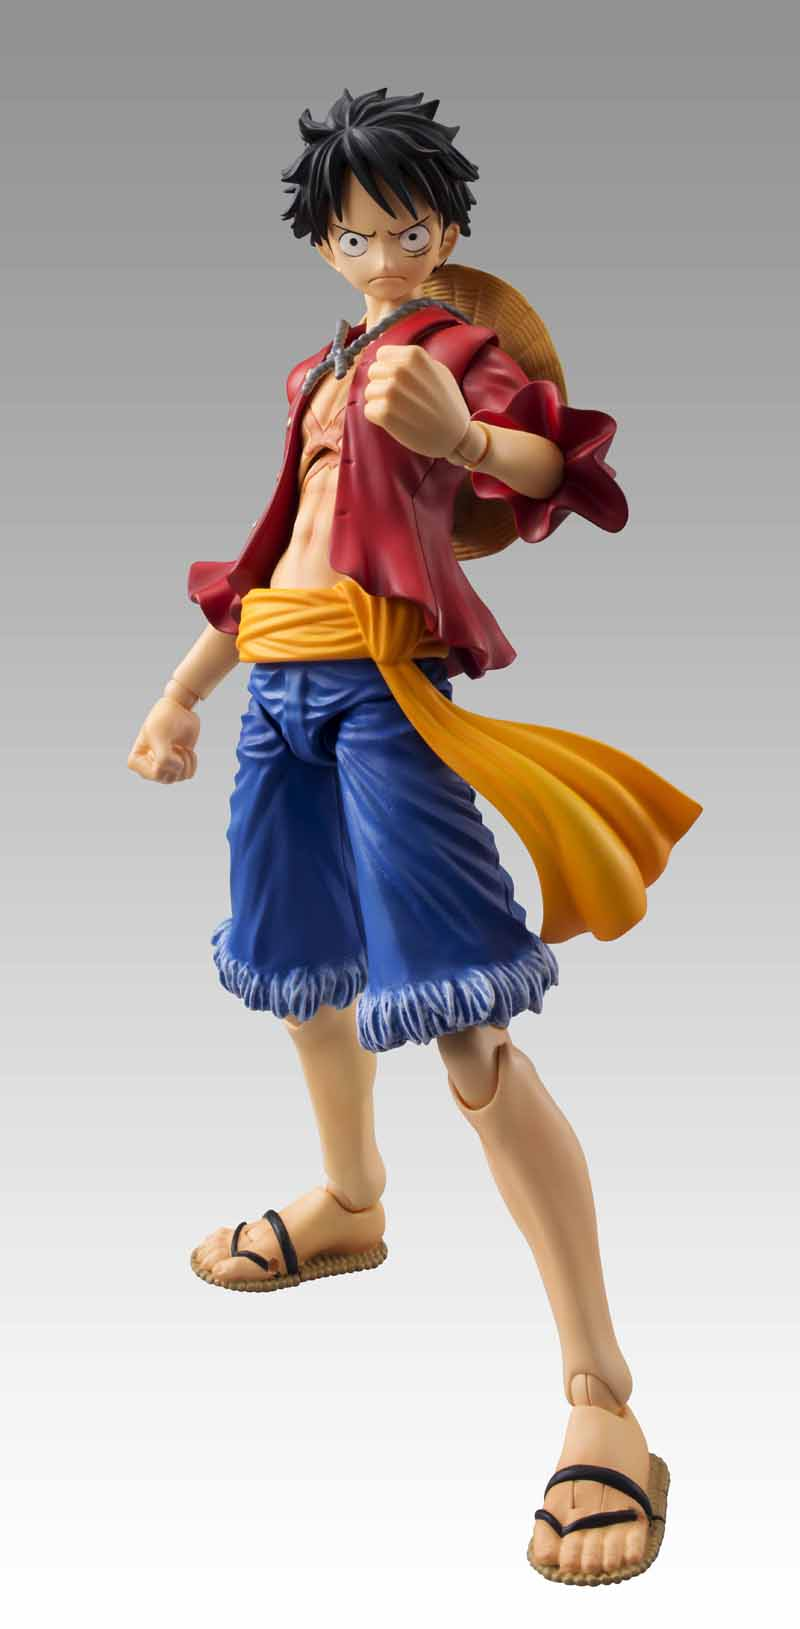 Variable Action Heros One Piece Monkey D Luffy